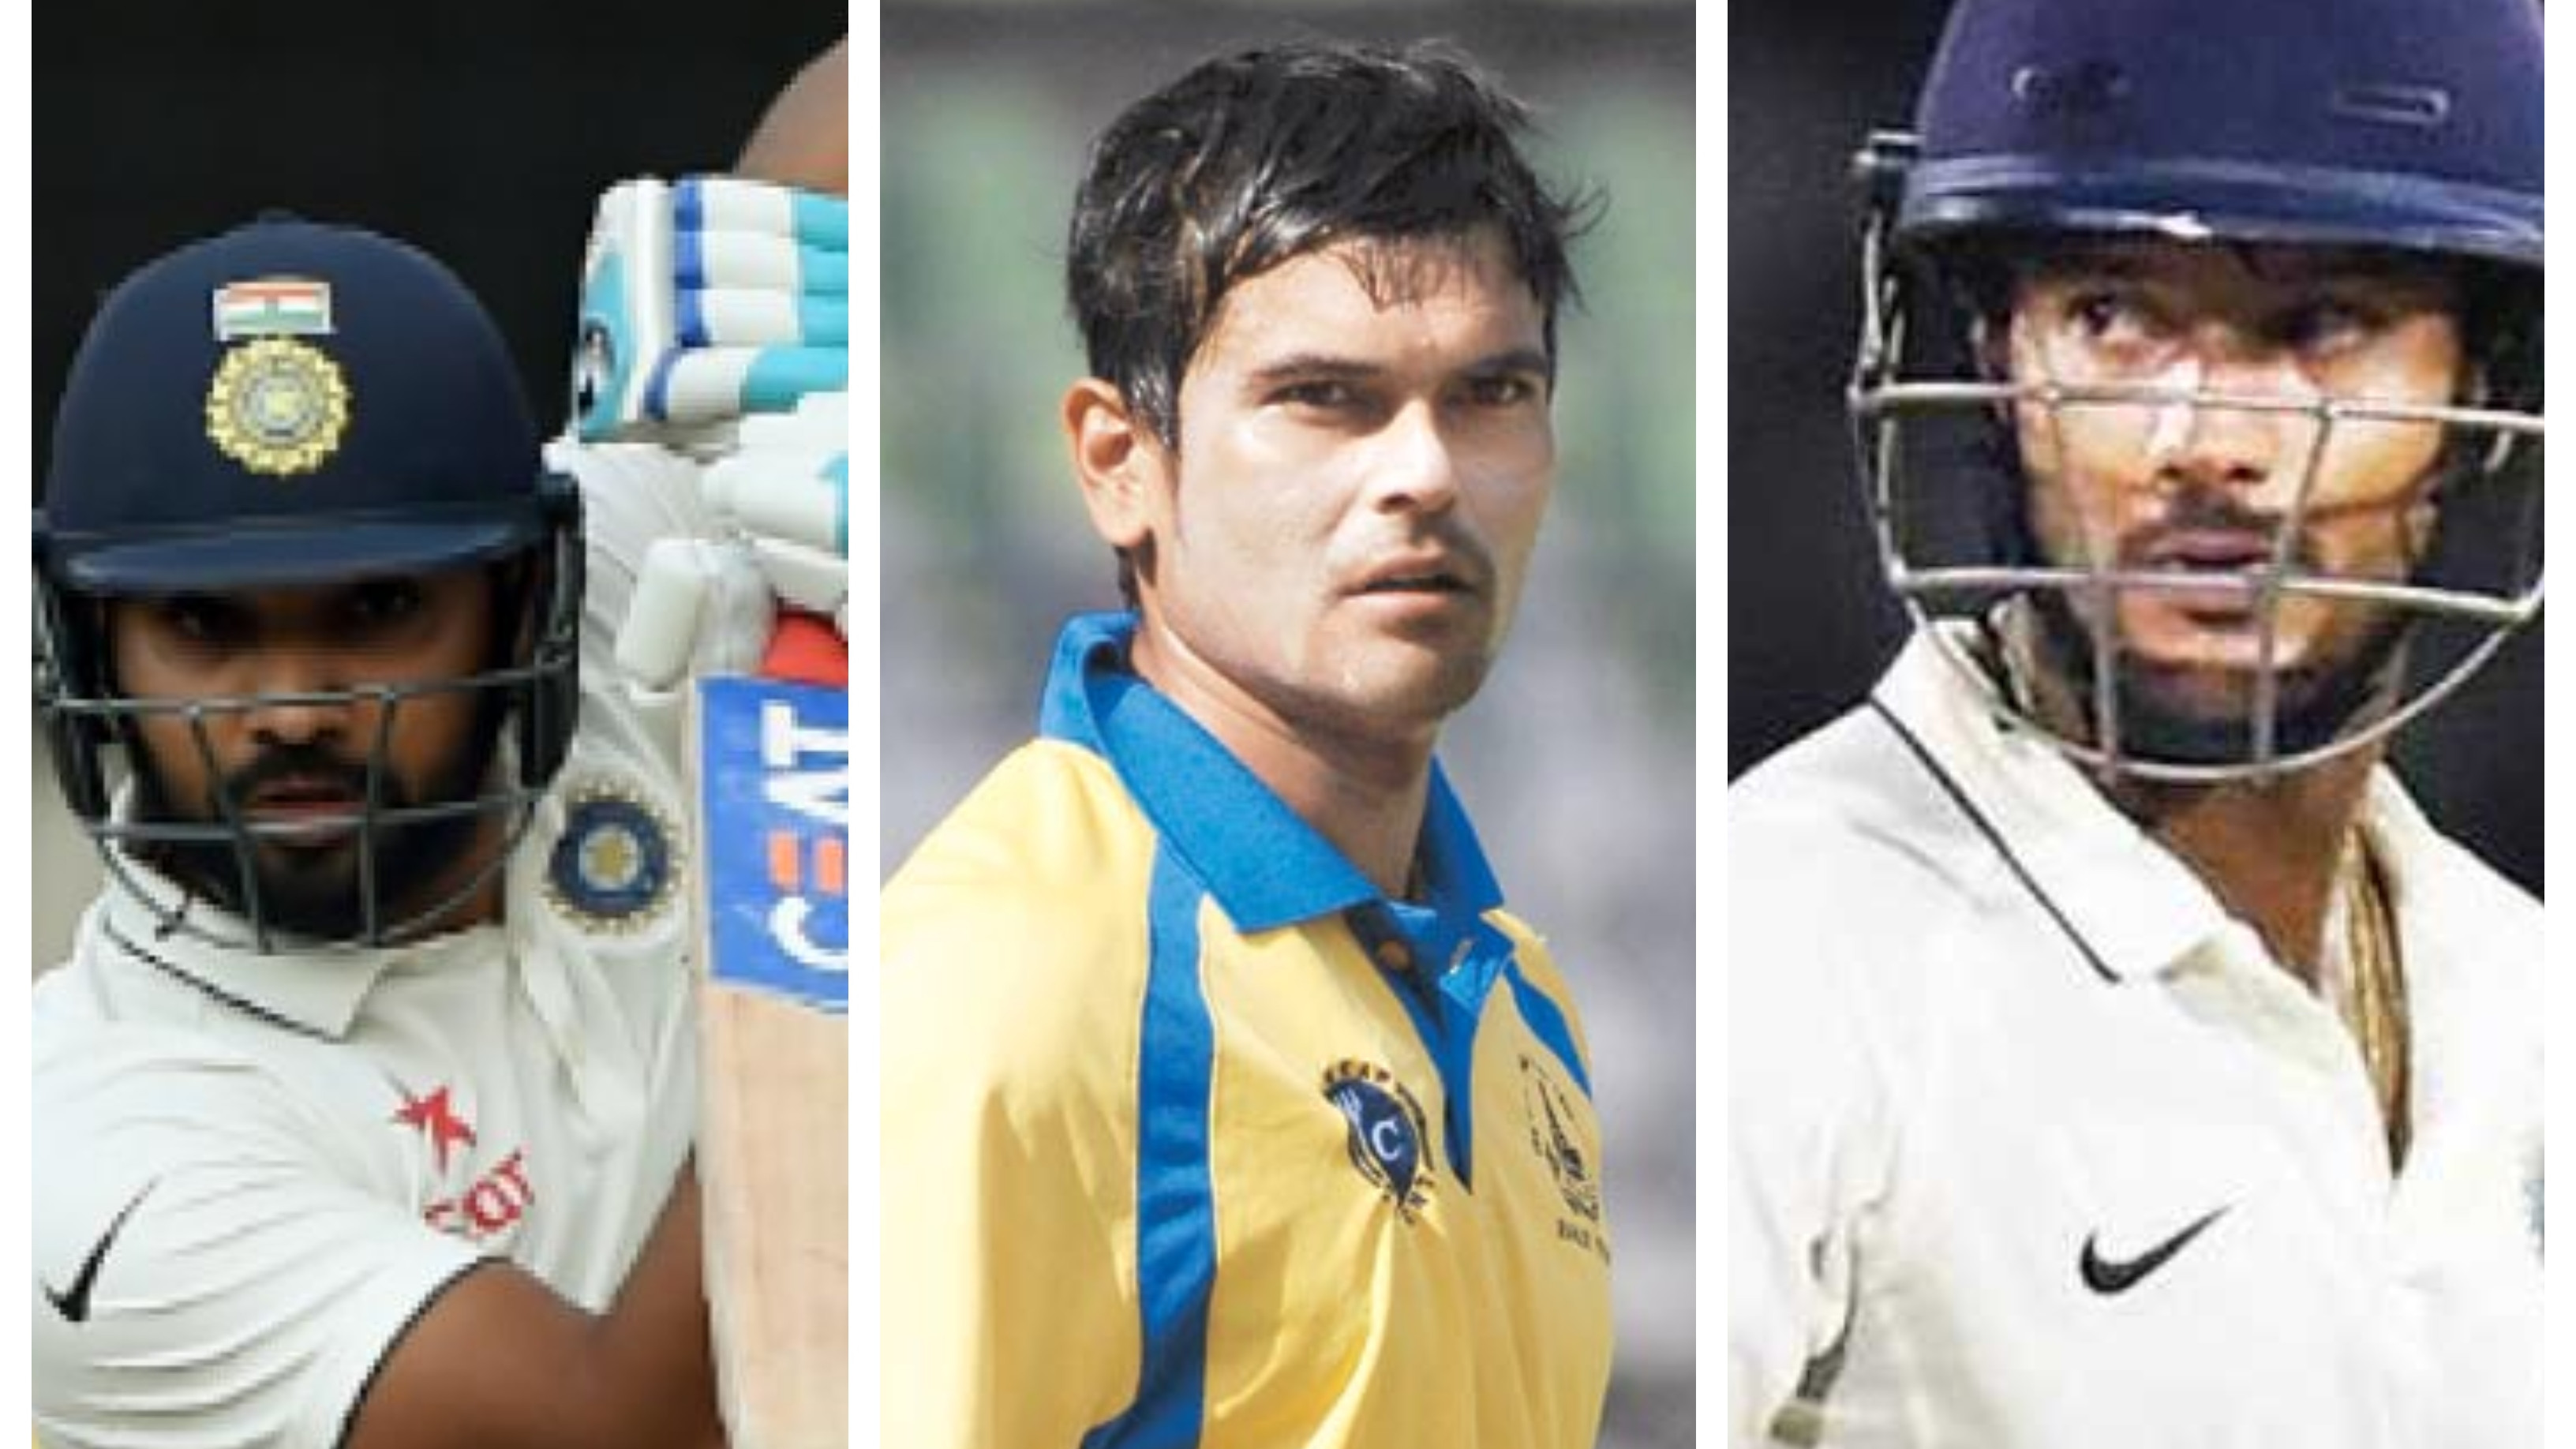 Badrinath questions Rohit Sharma's selection over Mayank Agarwal in the Test squad